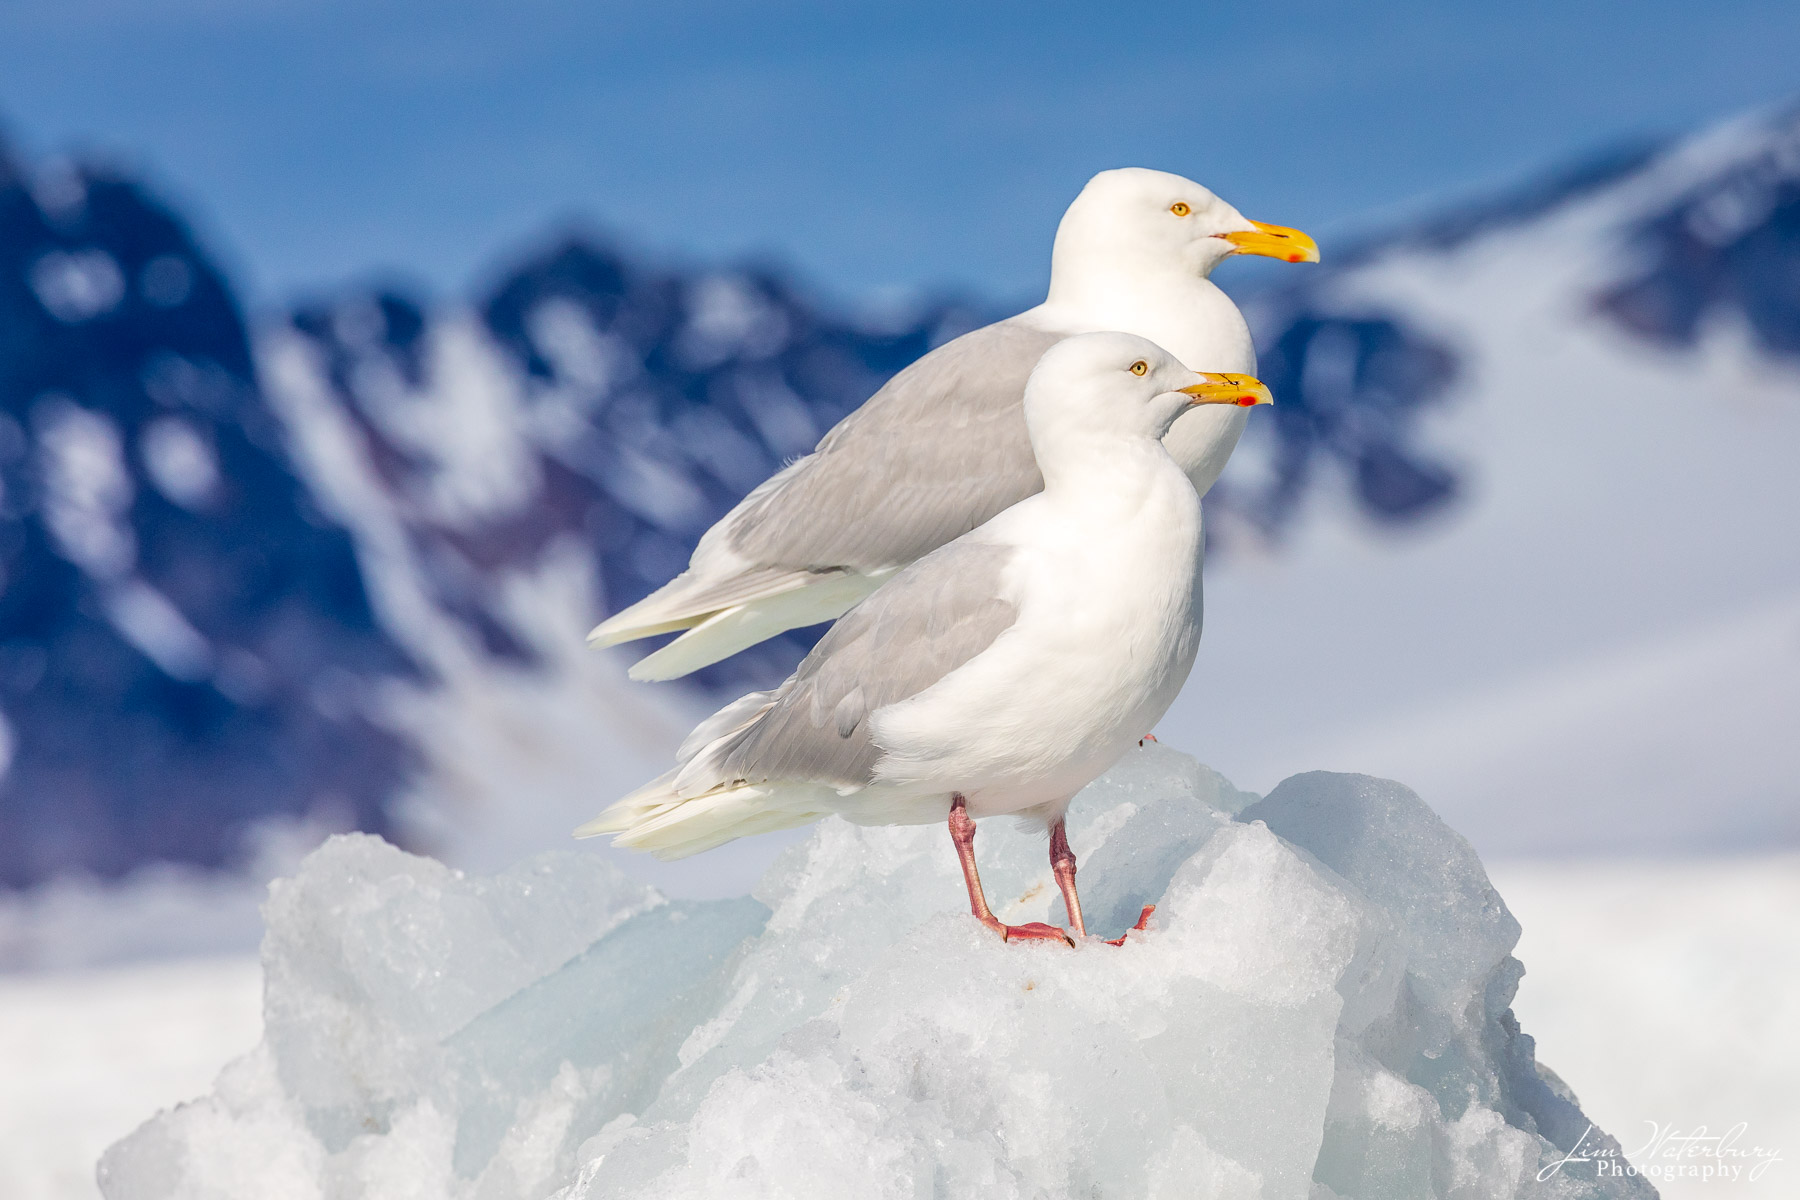 A pair of Glaucous gulls sit on a mound of rock and ice against a backdrop of distant mountains, in Svalbard, Norway in winter...